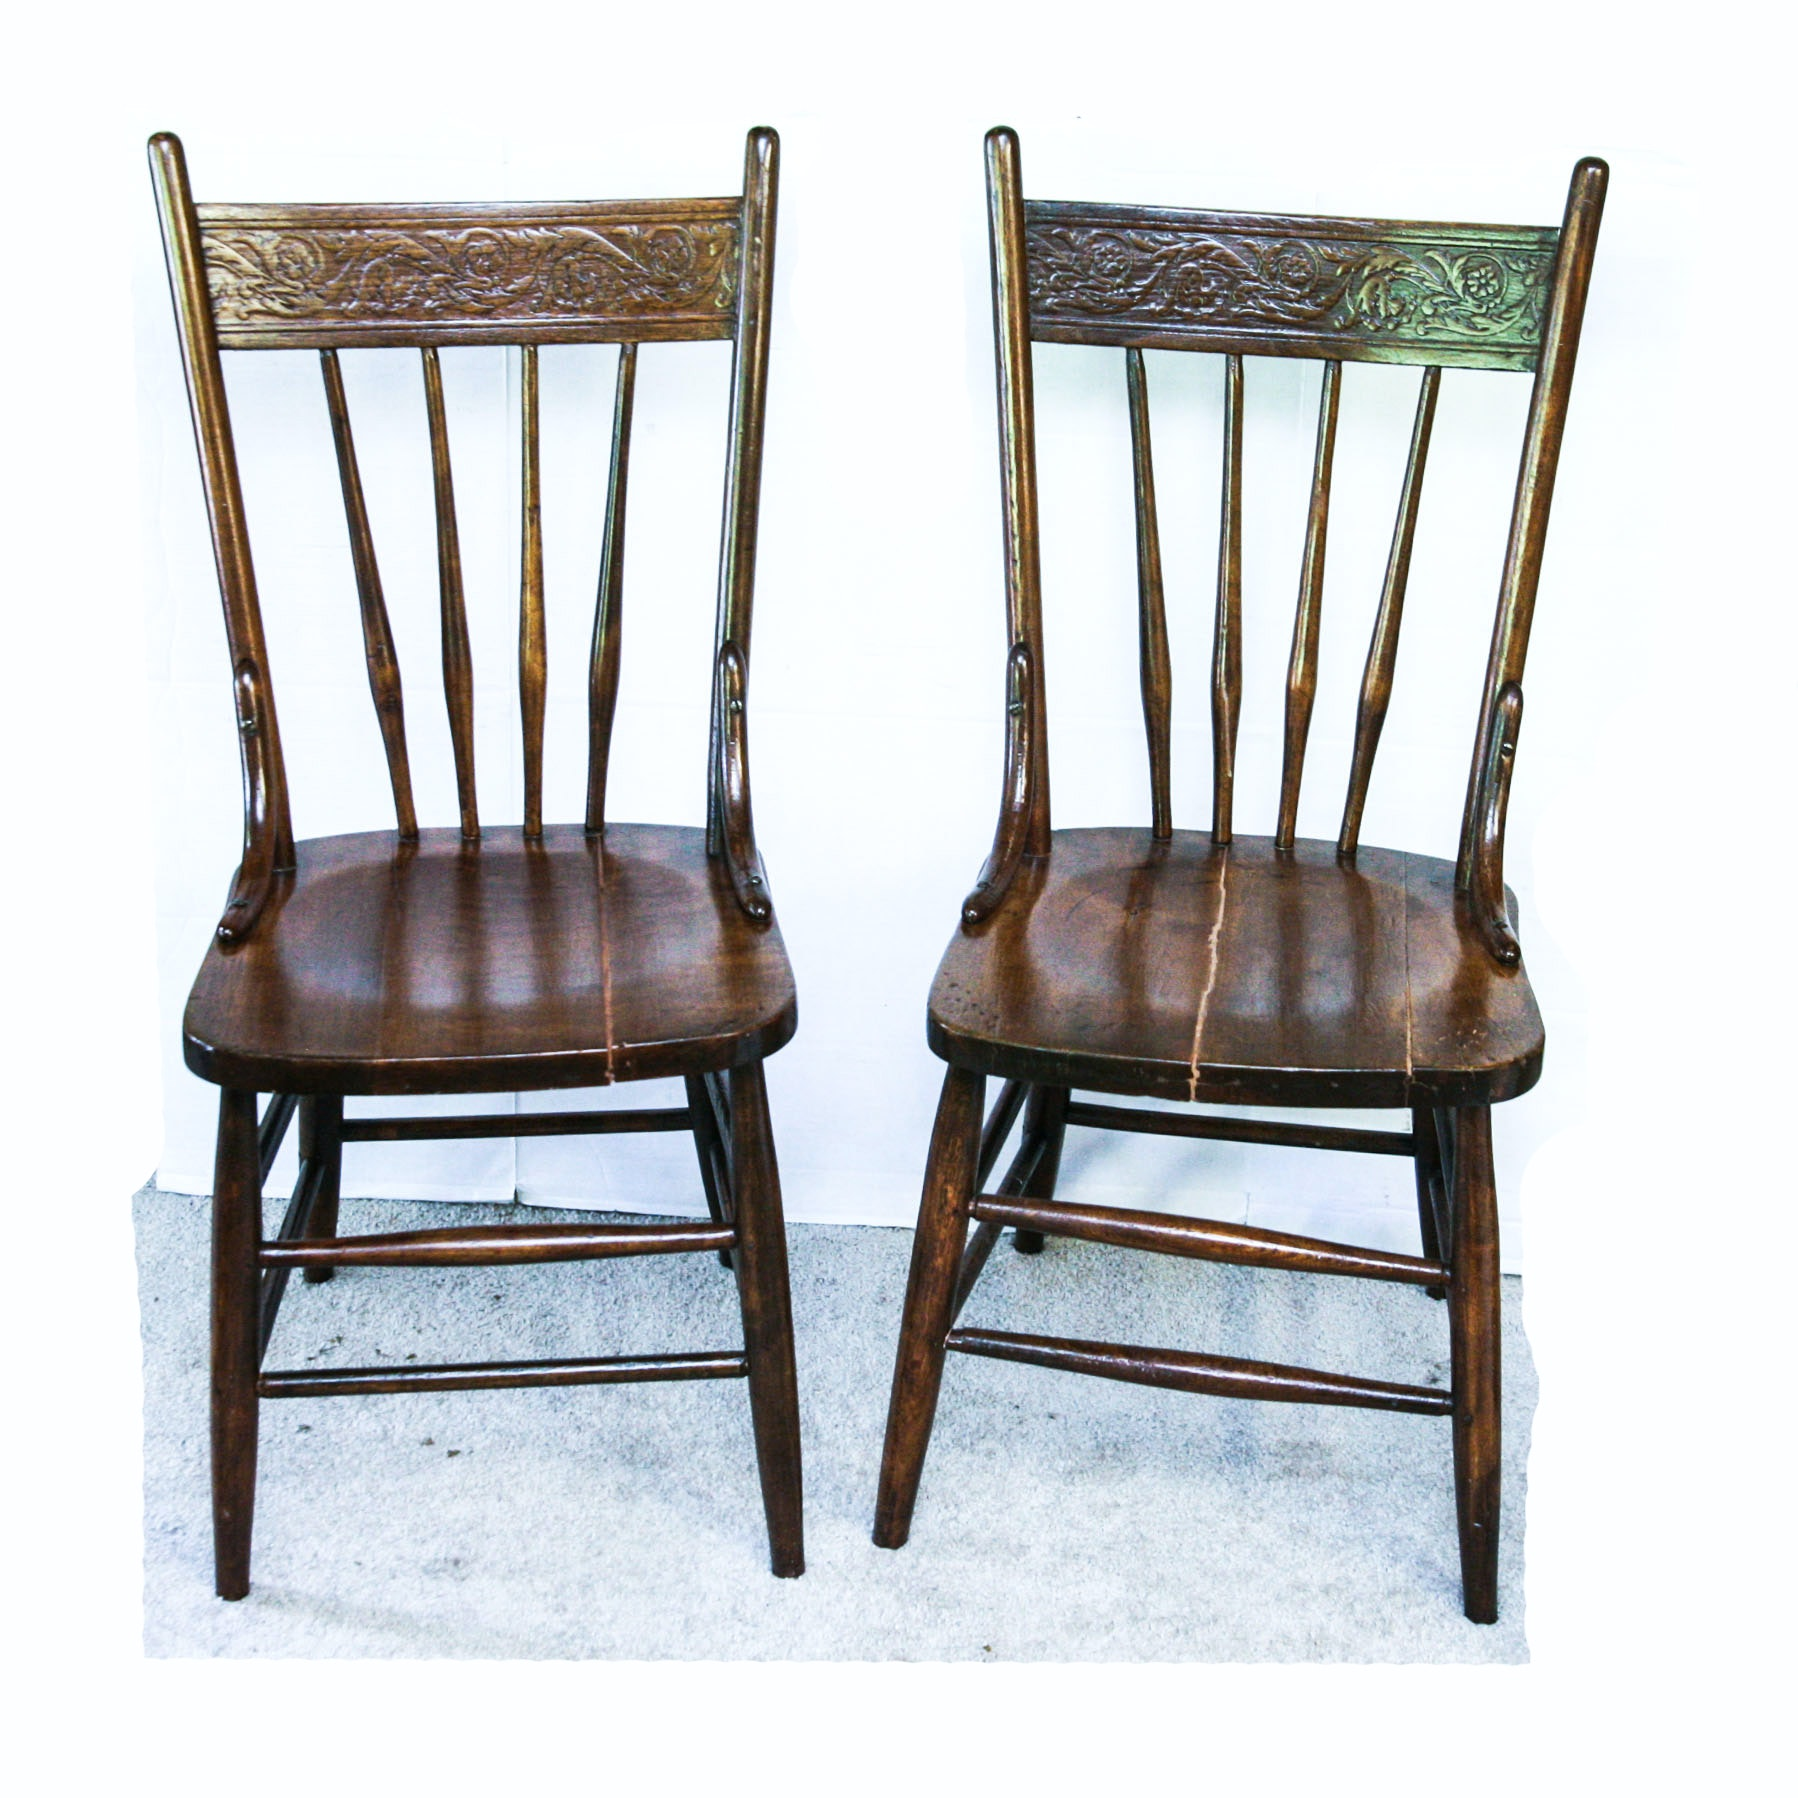 Antique Wooden Dining Chairs two circa 1900 antique wood pressed back spindle dining chairs : ebth